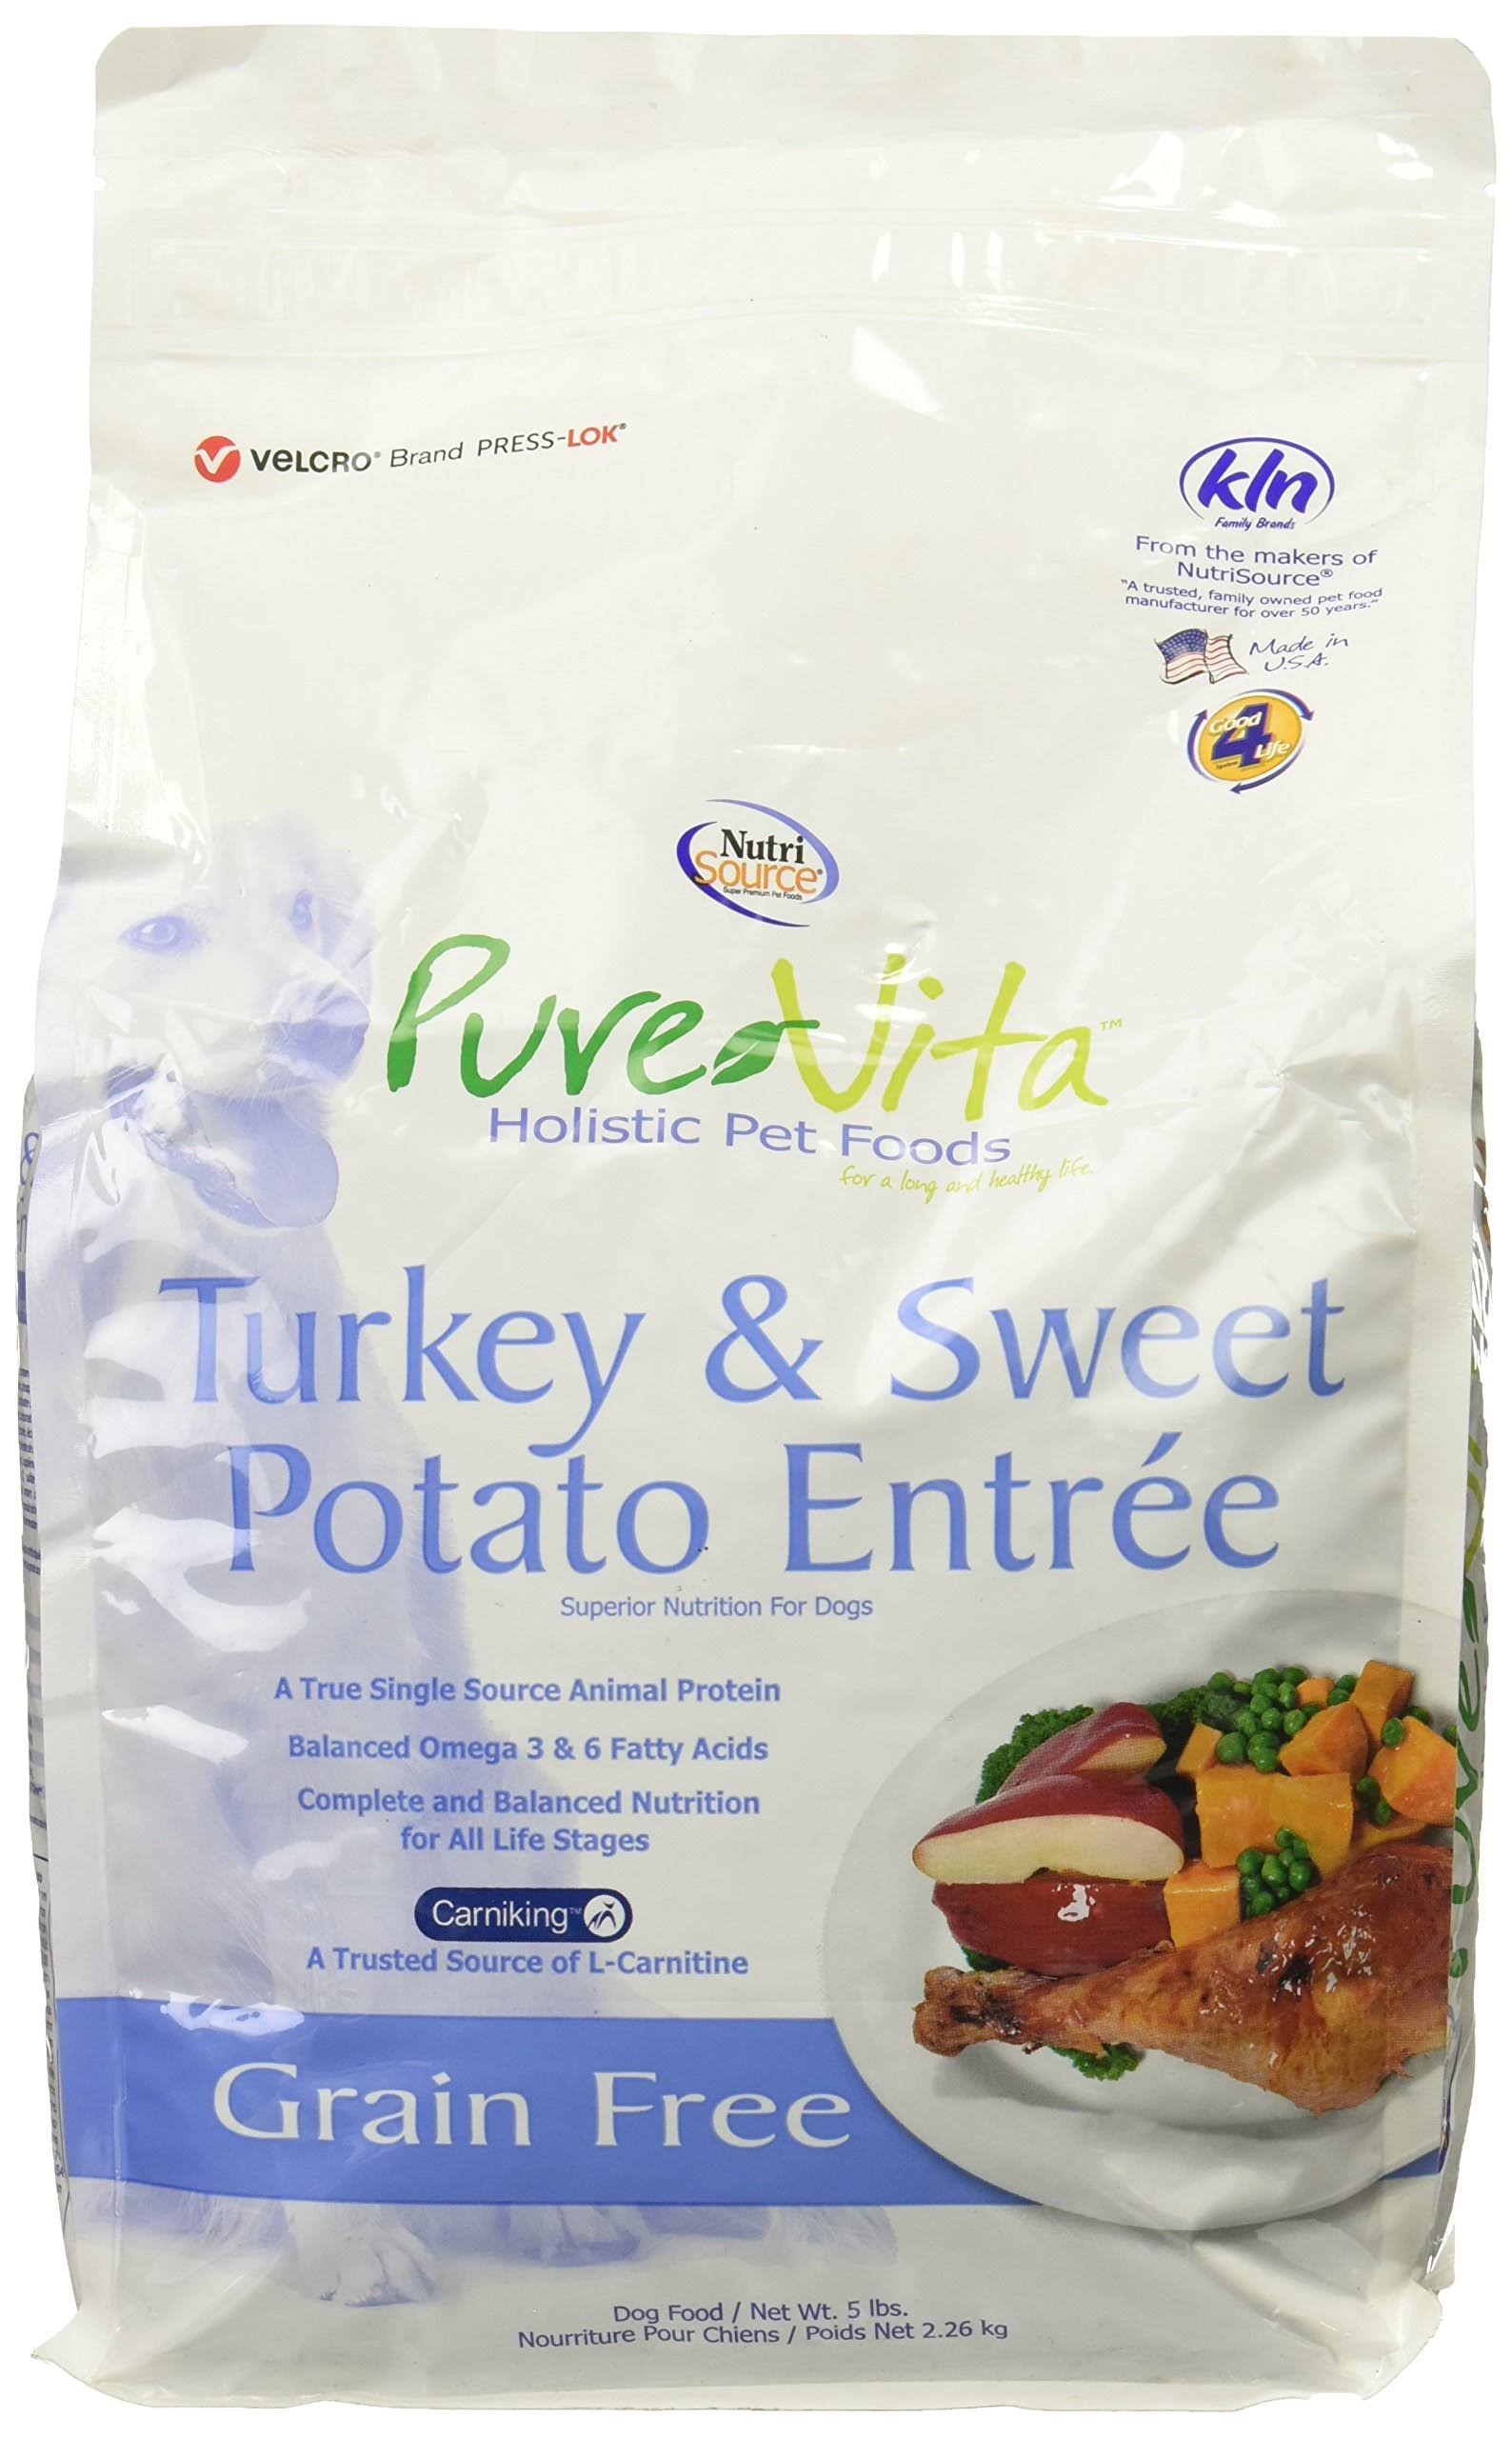 PureVita Grain Free Dry Dog Food - Turkey & Sweet Potato Entrée